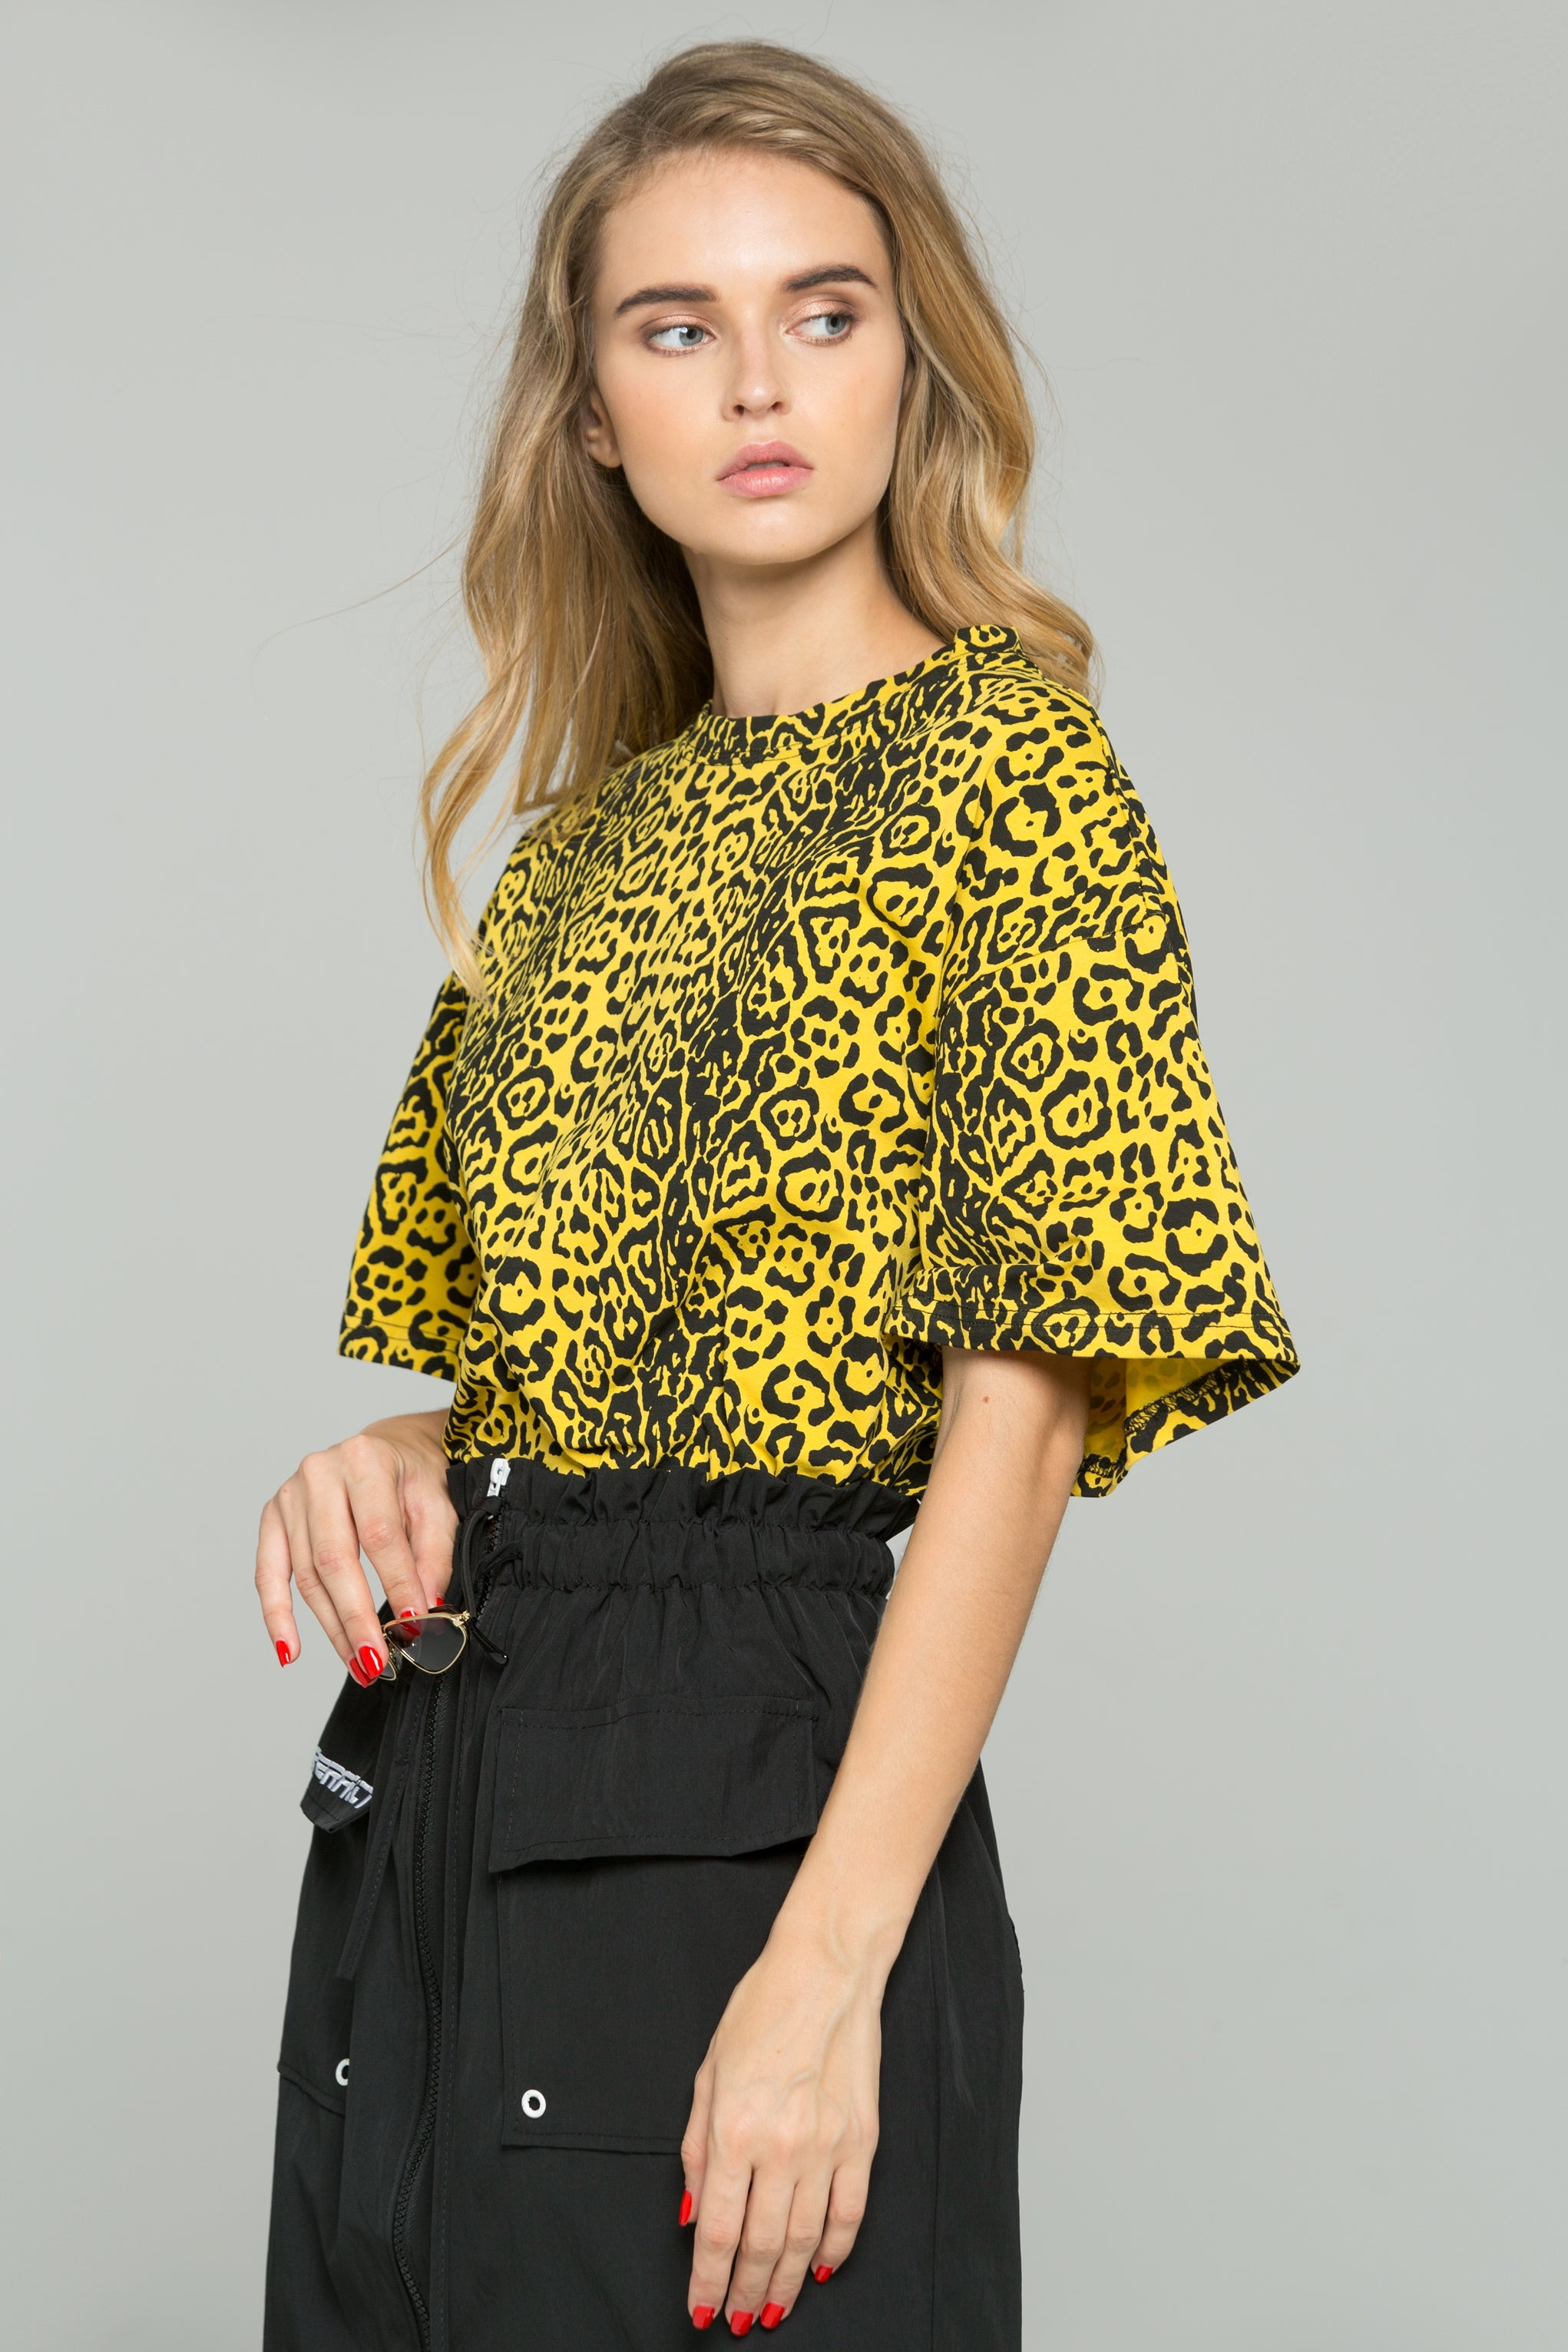 163a5c5e182f Yellow and Black Leopard Print Oversized Blouson Top – OwnTheLooks